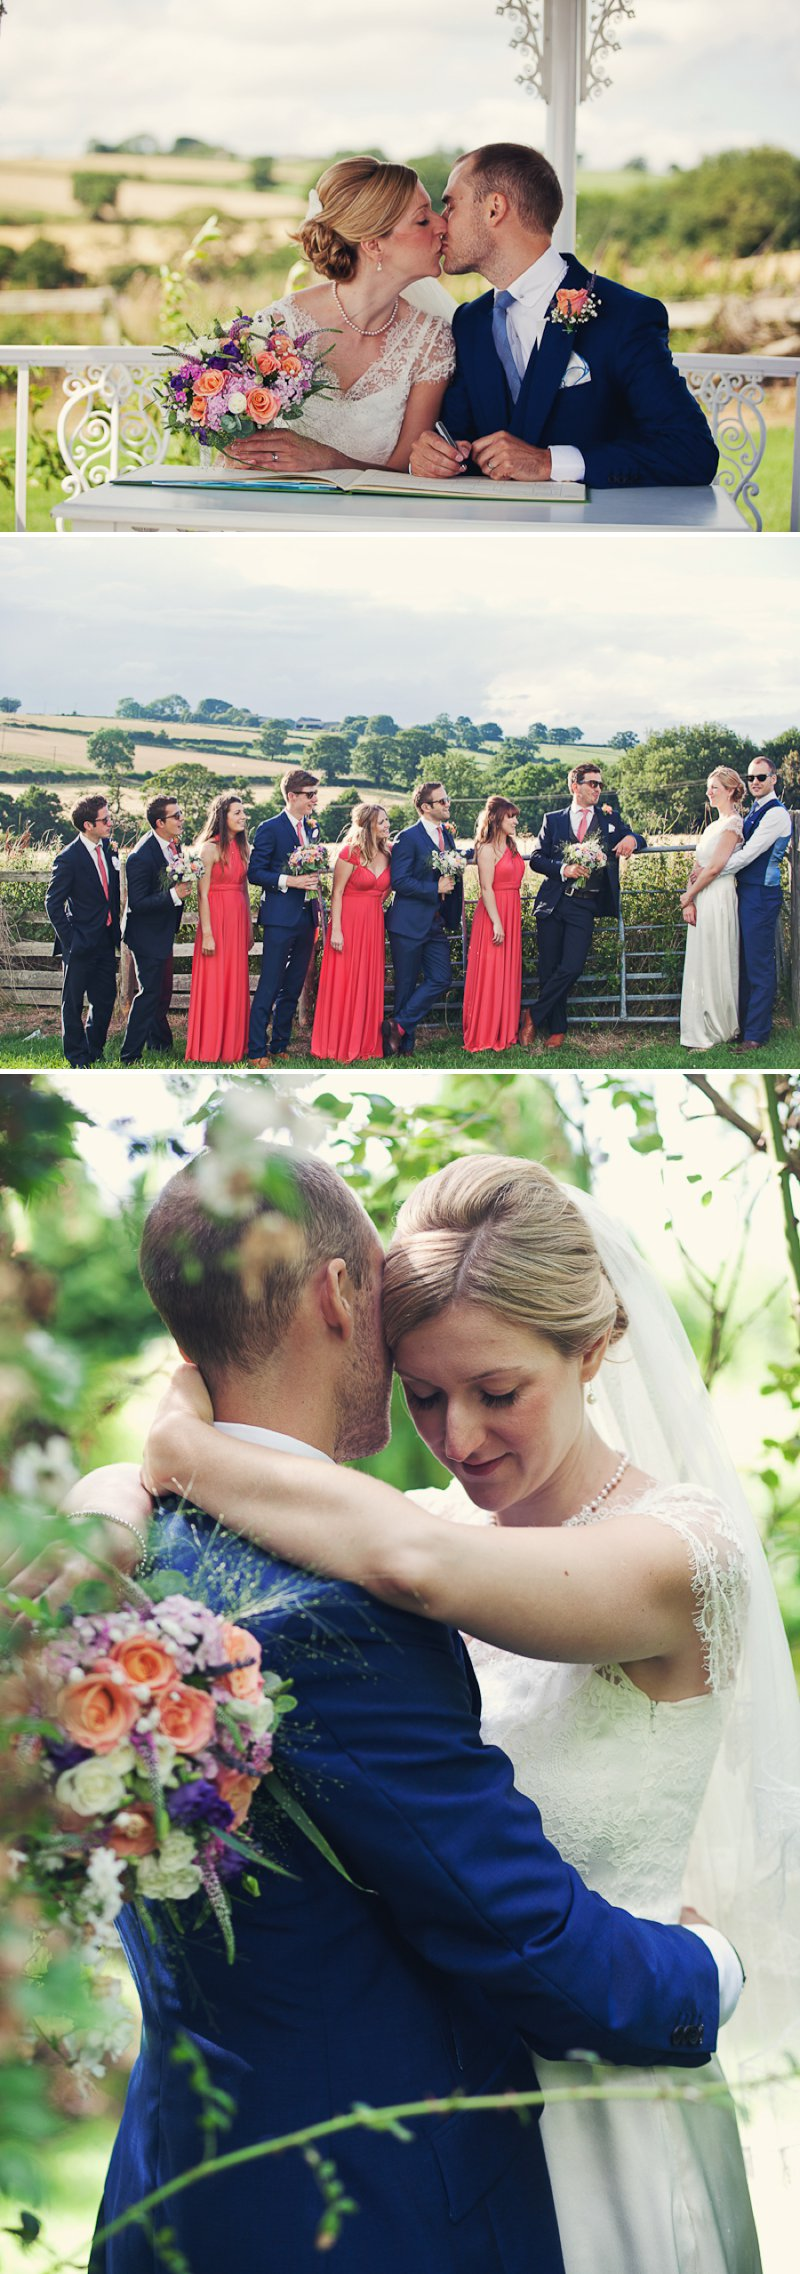 Great Gatsby Inspired Wedding At Shottle Hall In Derbyshire With Bride In Bespoke Gown by Susie Stone And Groom In Bespoke Suit By Cad And The Dandy 1